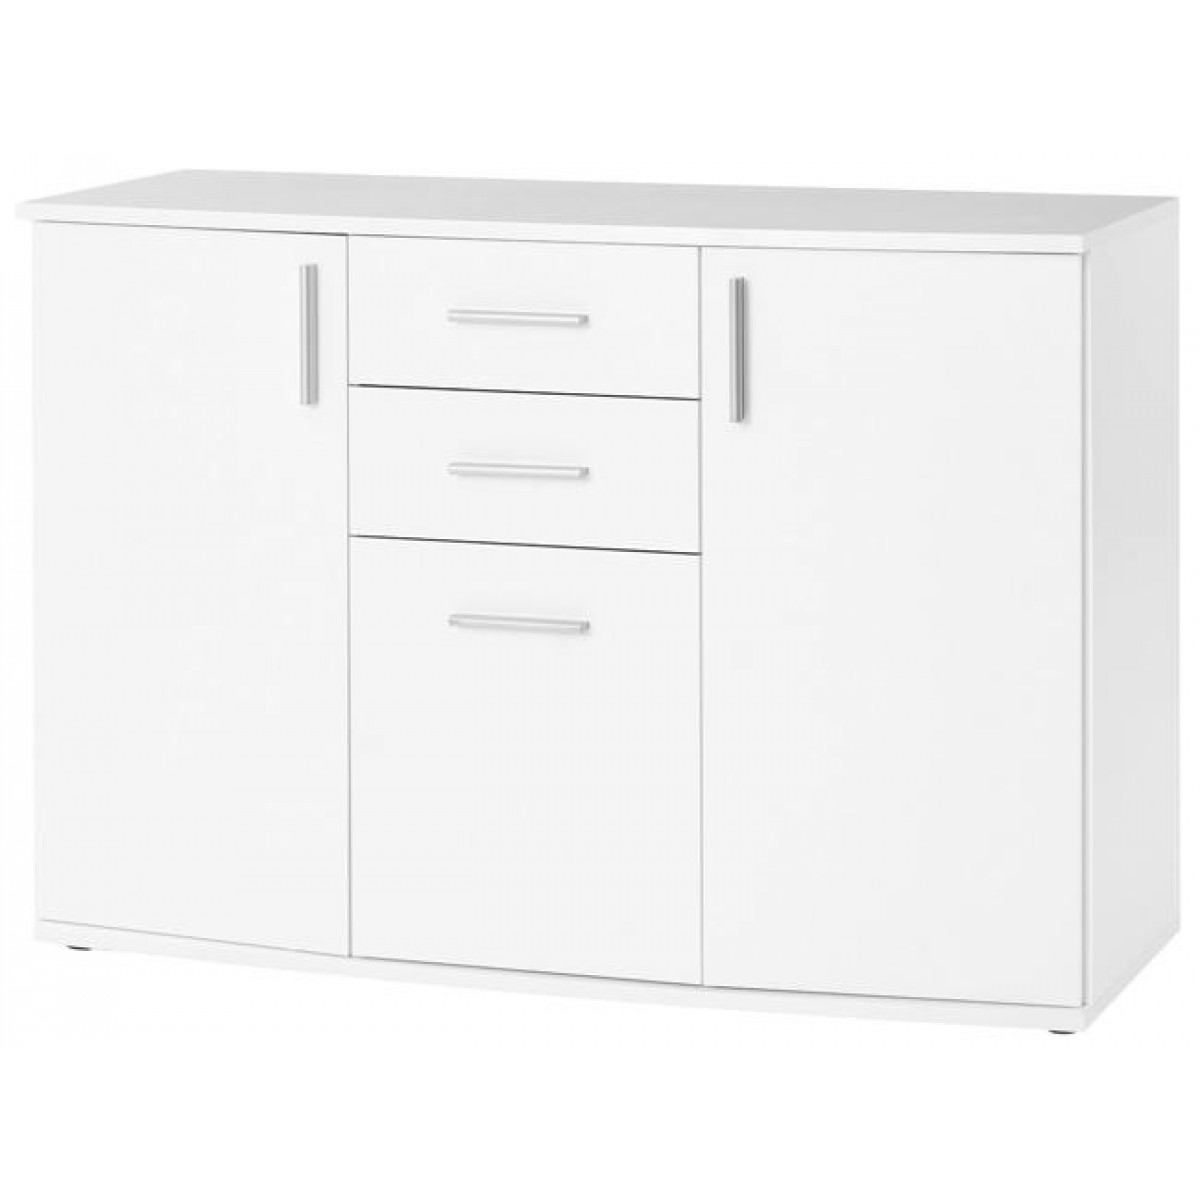 Mueble Auxiliar Moderno Great Mueble Auxiliar Cocina Ikea Pictures Gt Gt Mueble